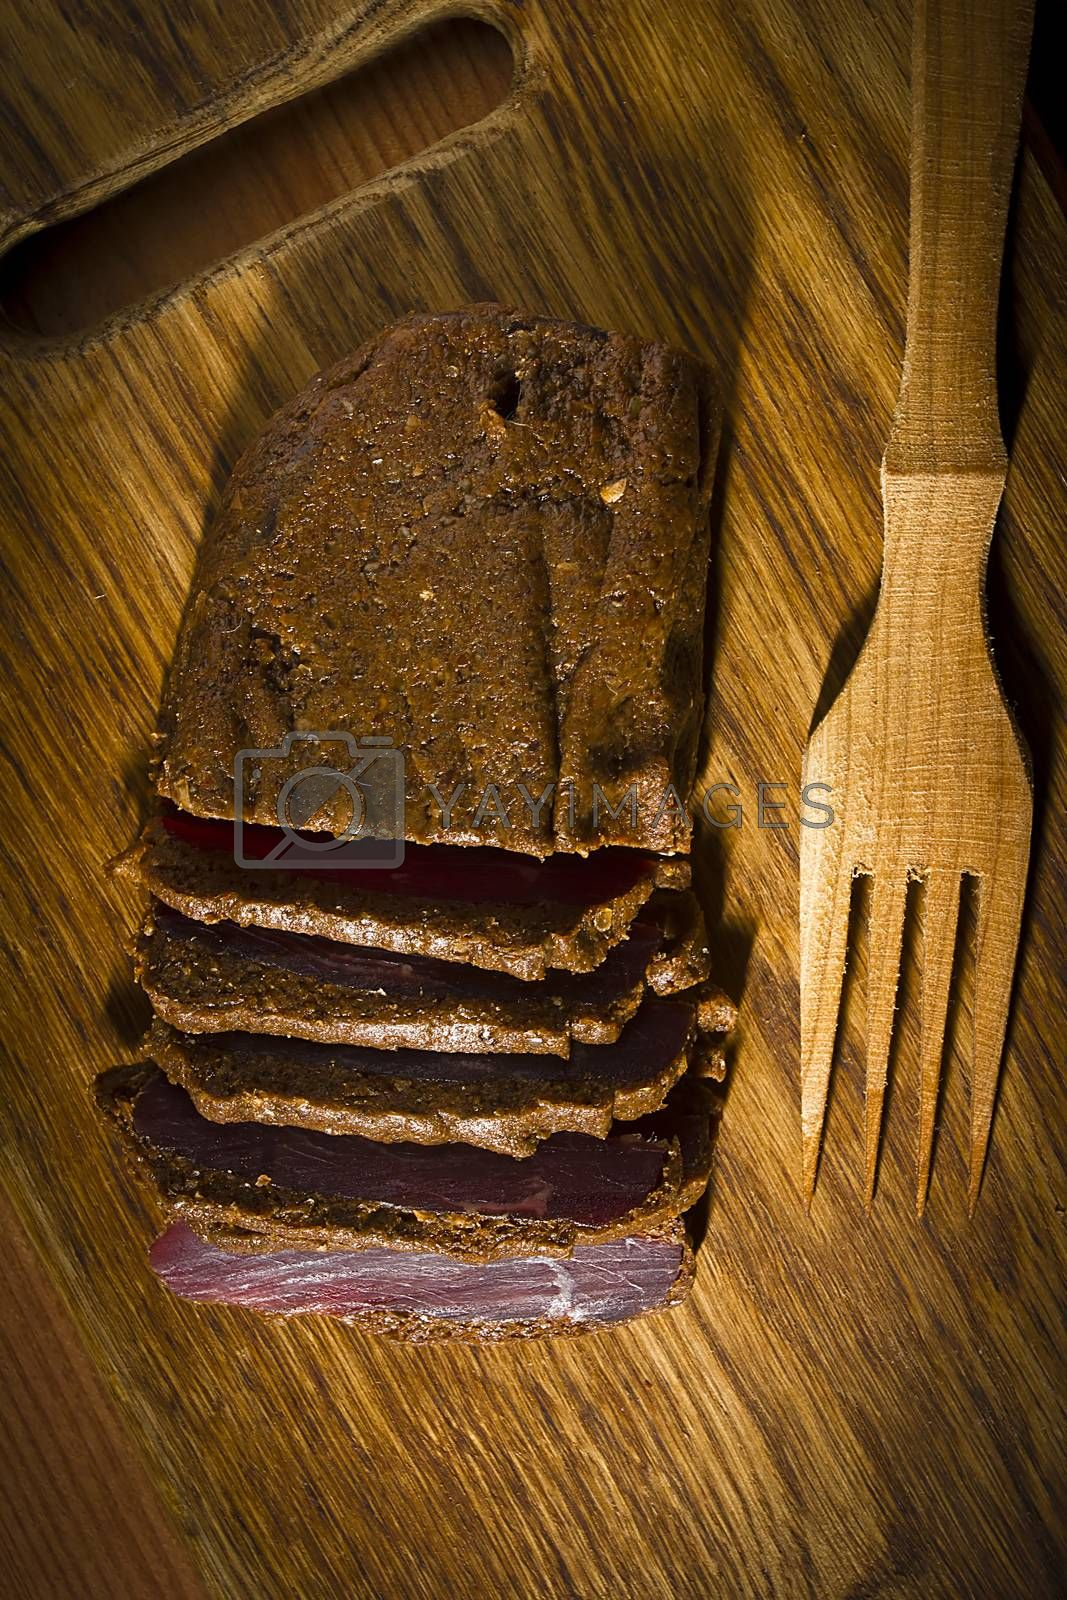 Cured meat on a wooden cutting board